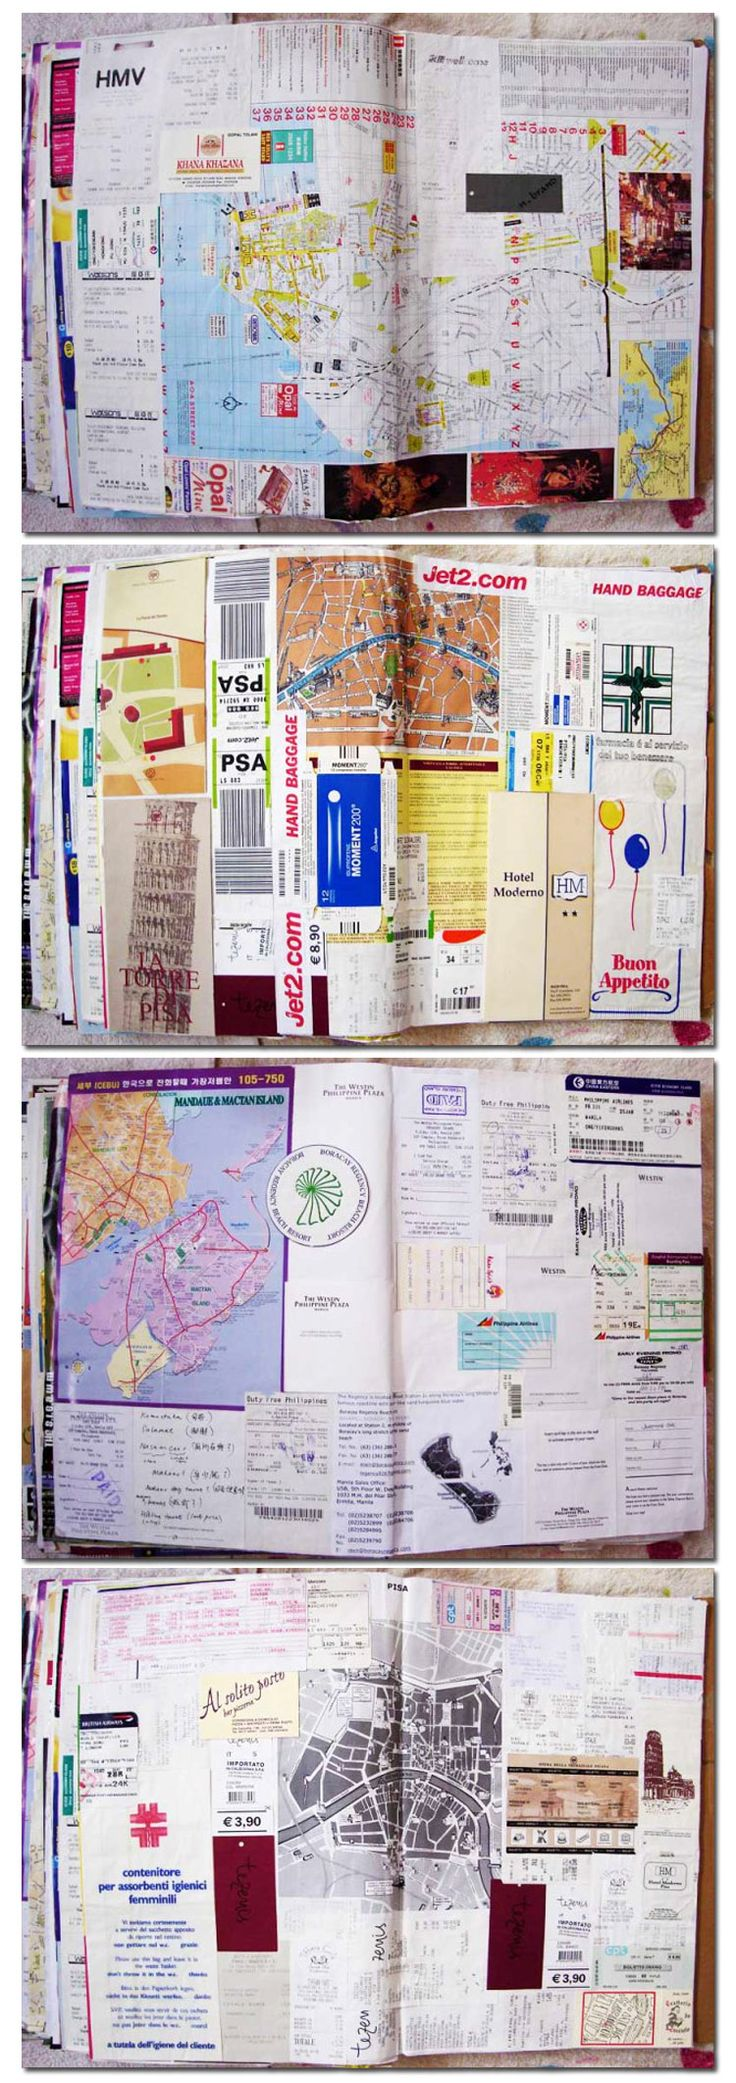 Travel Scrapbook Idea http://shantihshalaholisticarts.com/global-travel-scrapbook-series-%E7%8E%AF%E7%90%83%E6%97%85%E8%A1%8C%E5%89%AA%E8%B4%B4%E7%B0%BF%E7%B3%BB%E5%88%97/ https://www.worldtrip-blog.com